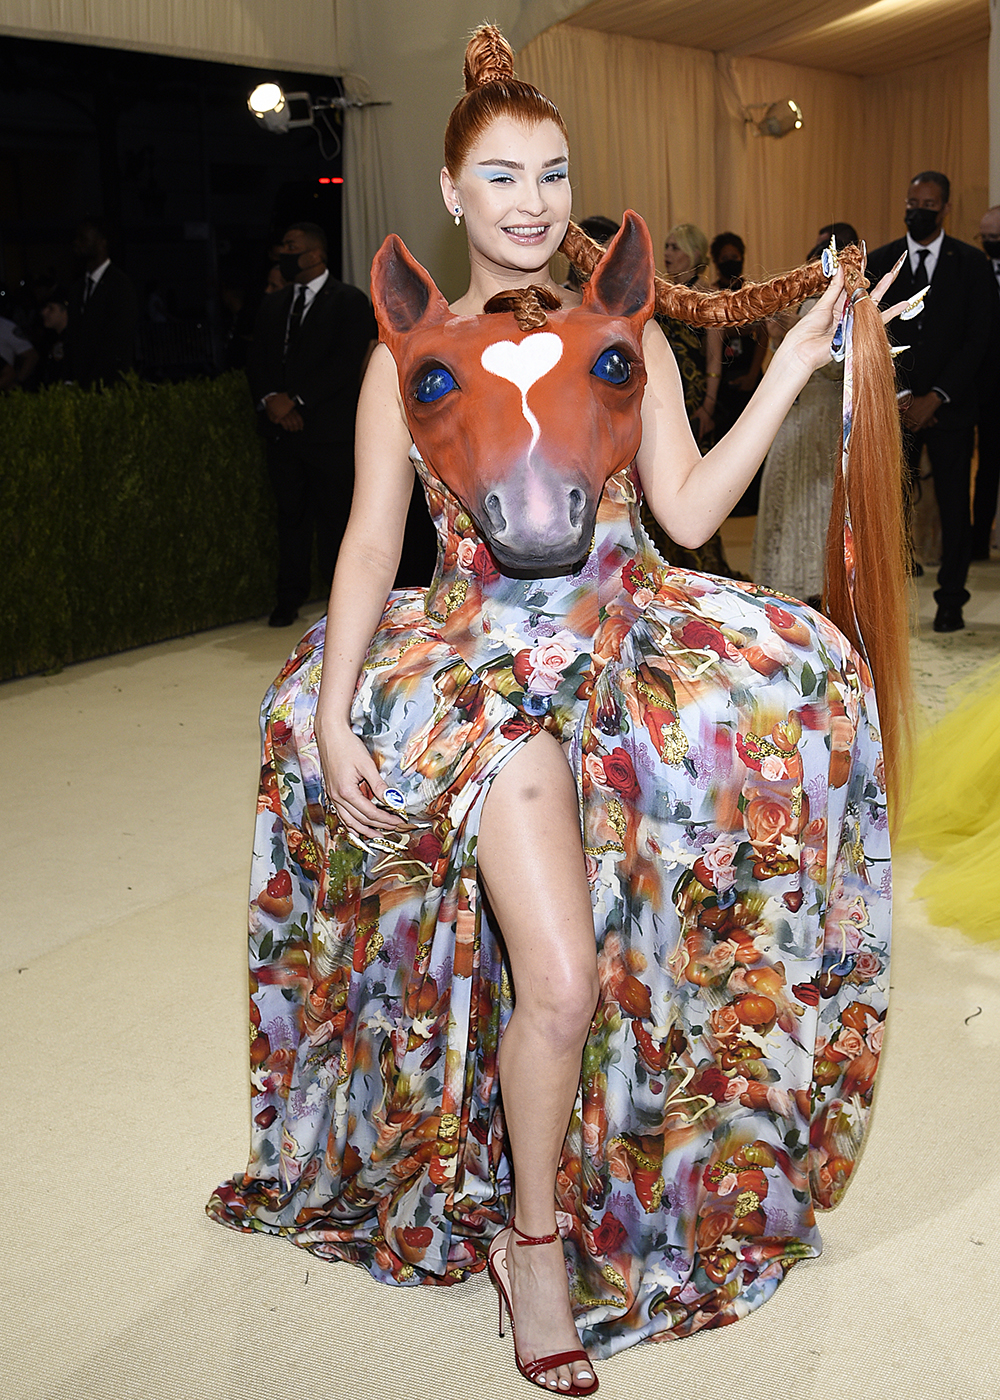 """Kim Petras attends The Metropolitan Museum of Art's Costume Institute benefit gala celebrating the opening of the """"In America: A Lexicon of Fashion"""" exhibition on Monday, Sept. 13, 2021, in New York. (Photo by Evan Agostini/Invision/AP)"""